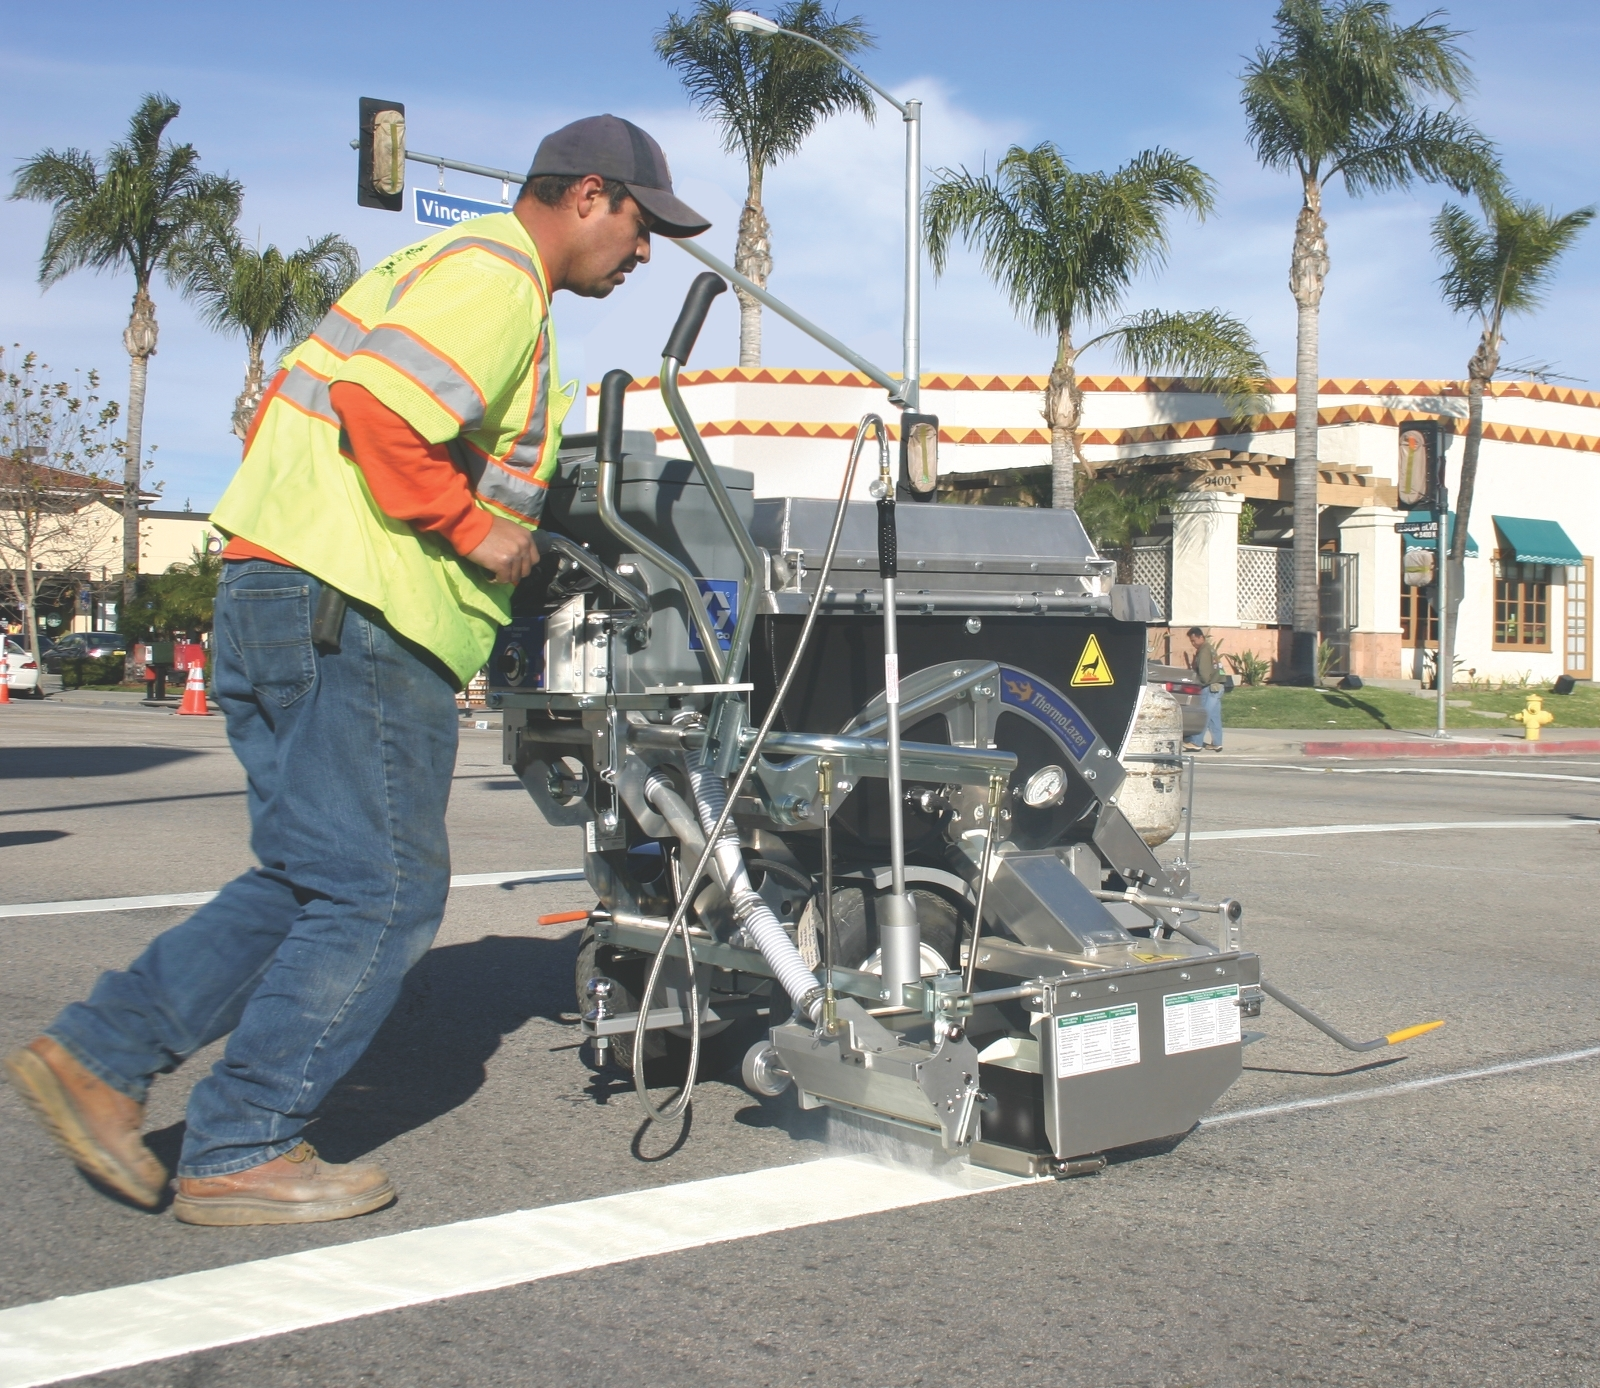 ThermoLazer applying thermoplastic road markings